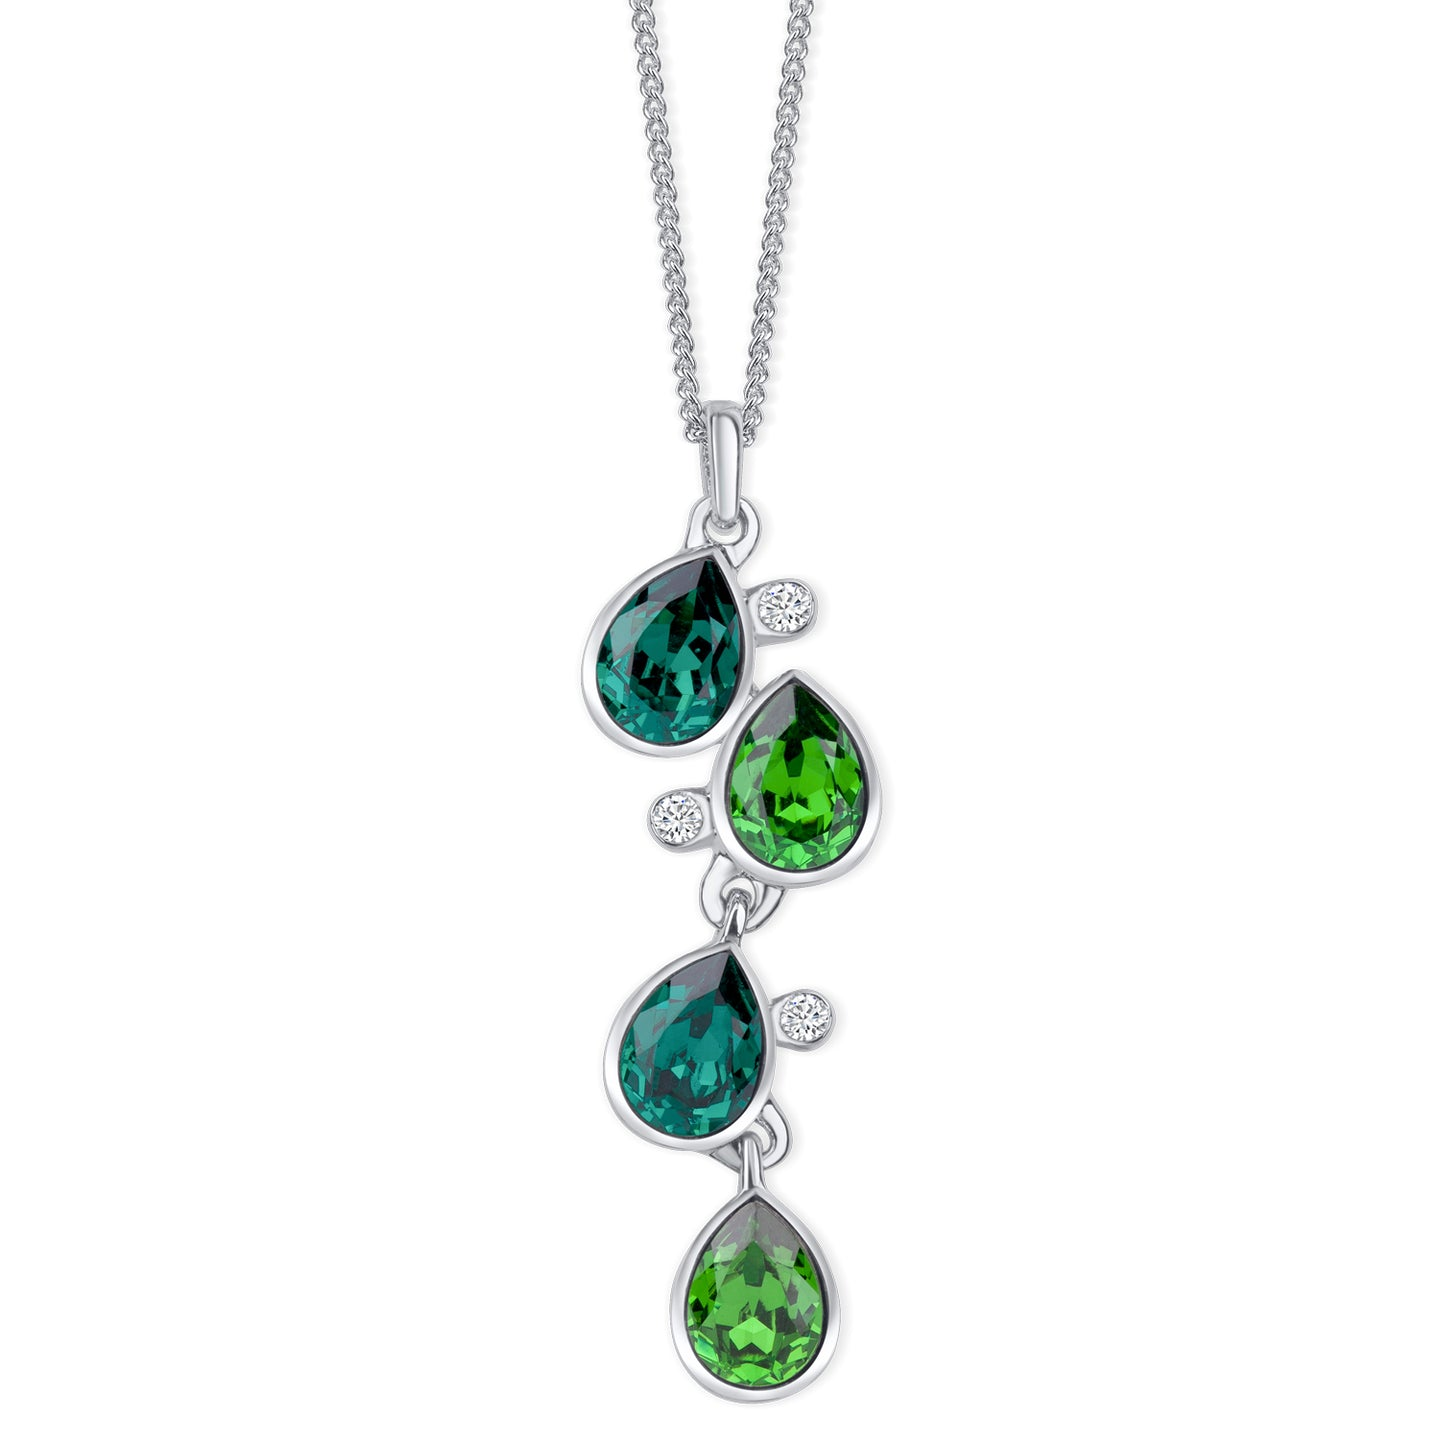 Celtic Dew Drops Crystal Pendant - Multi Green